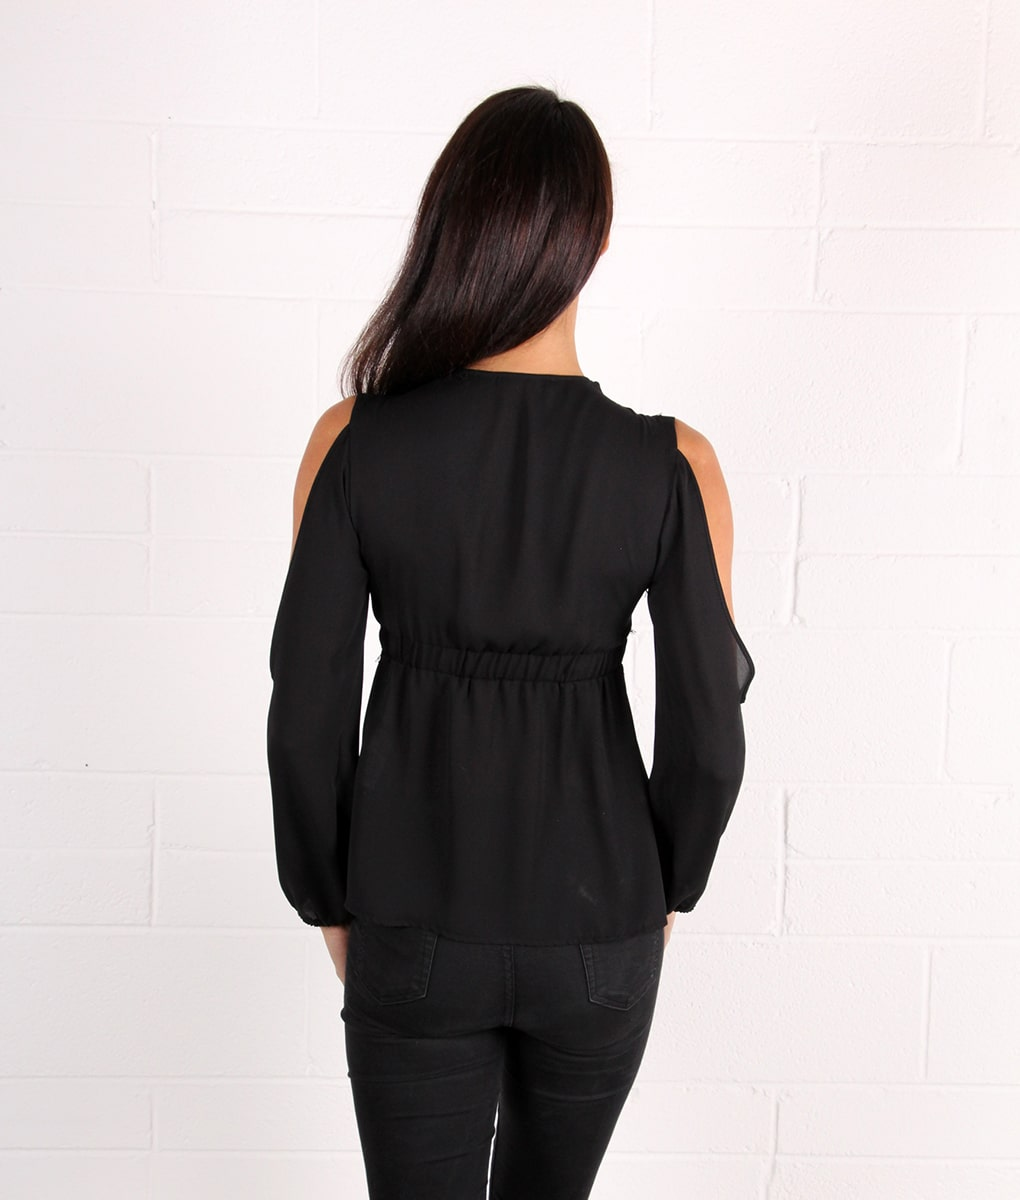 Alila-Black-Sheer-Cold-Shoulder-Lace-long-sleeve-going-out-top-by-Explosion-London-back